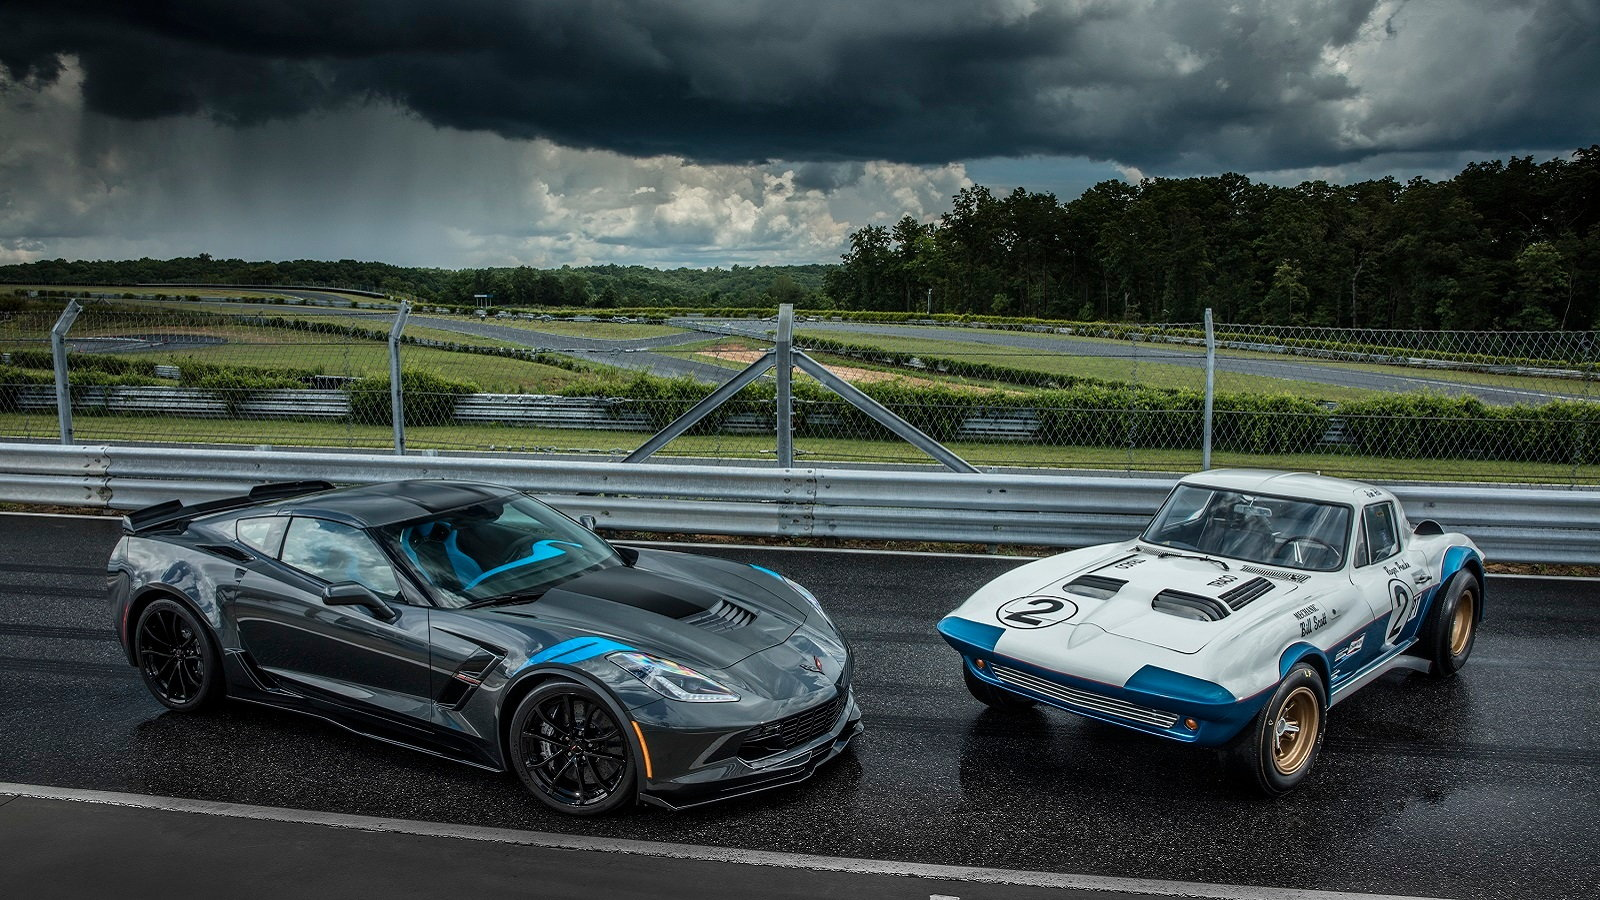 C7 Corvette Styling Changes over the Years - 2014-2019